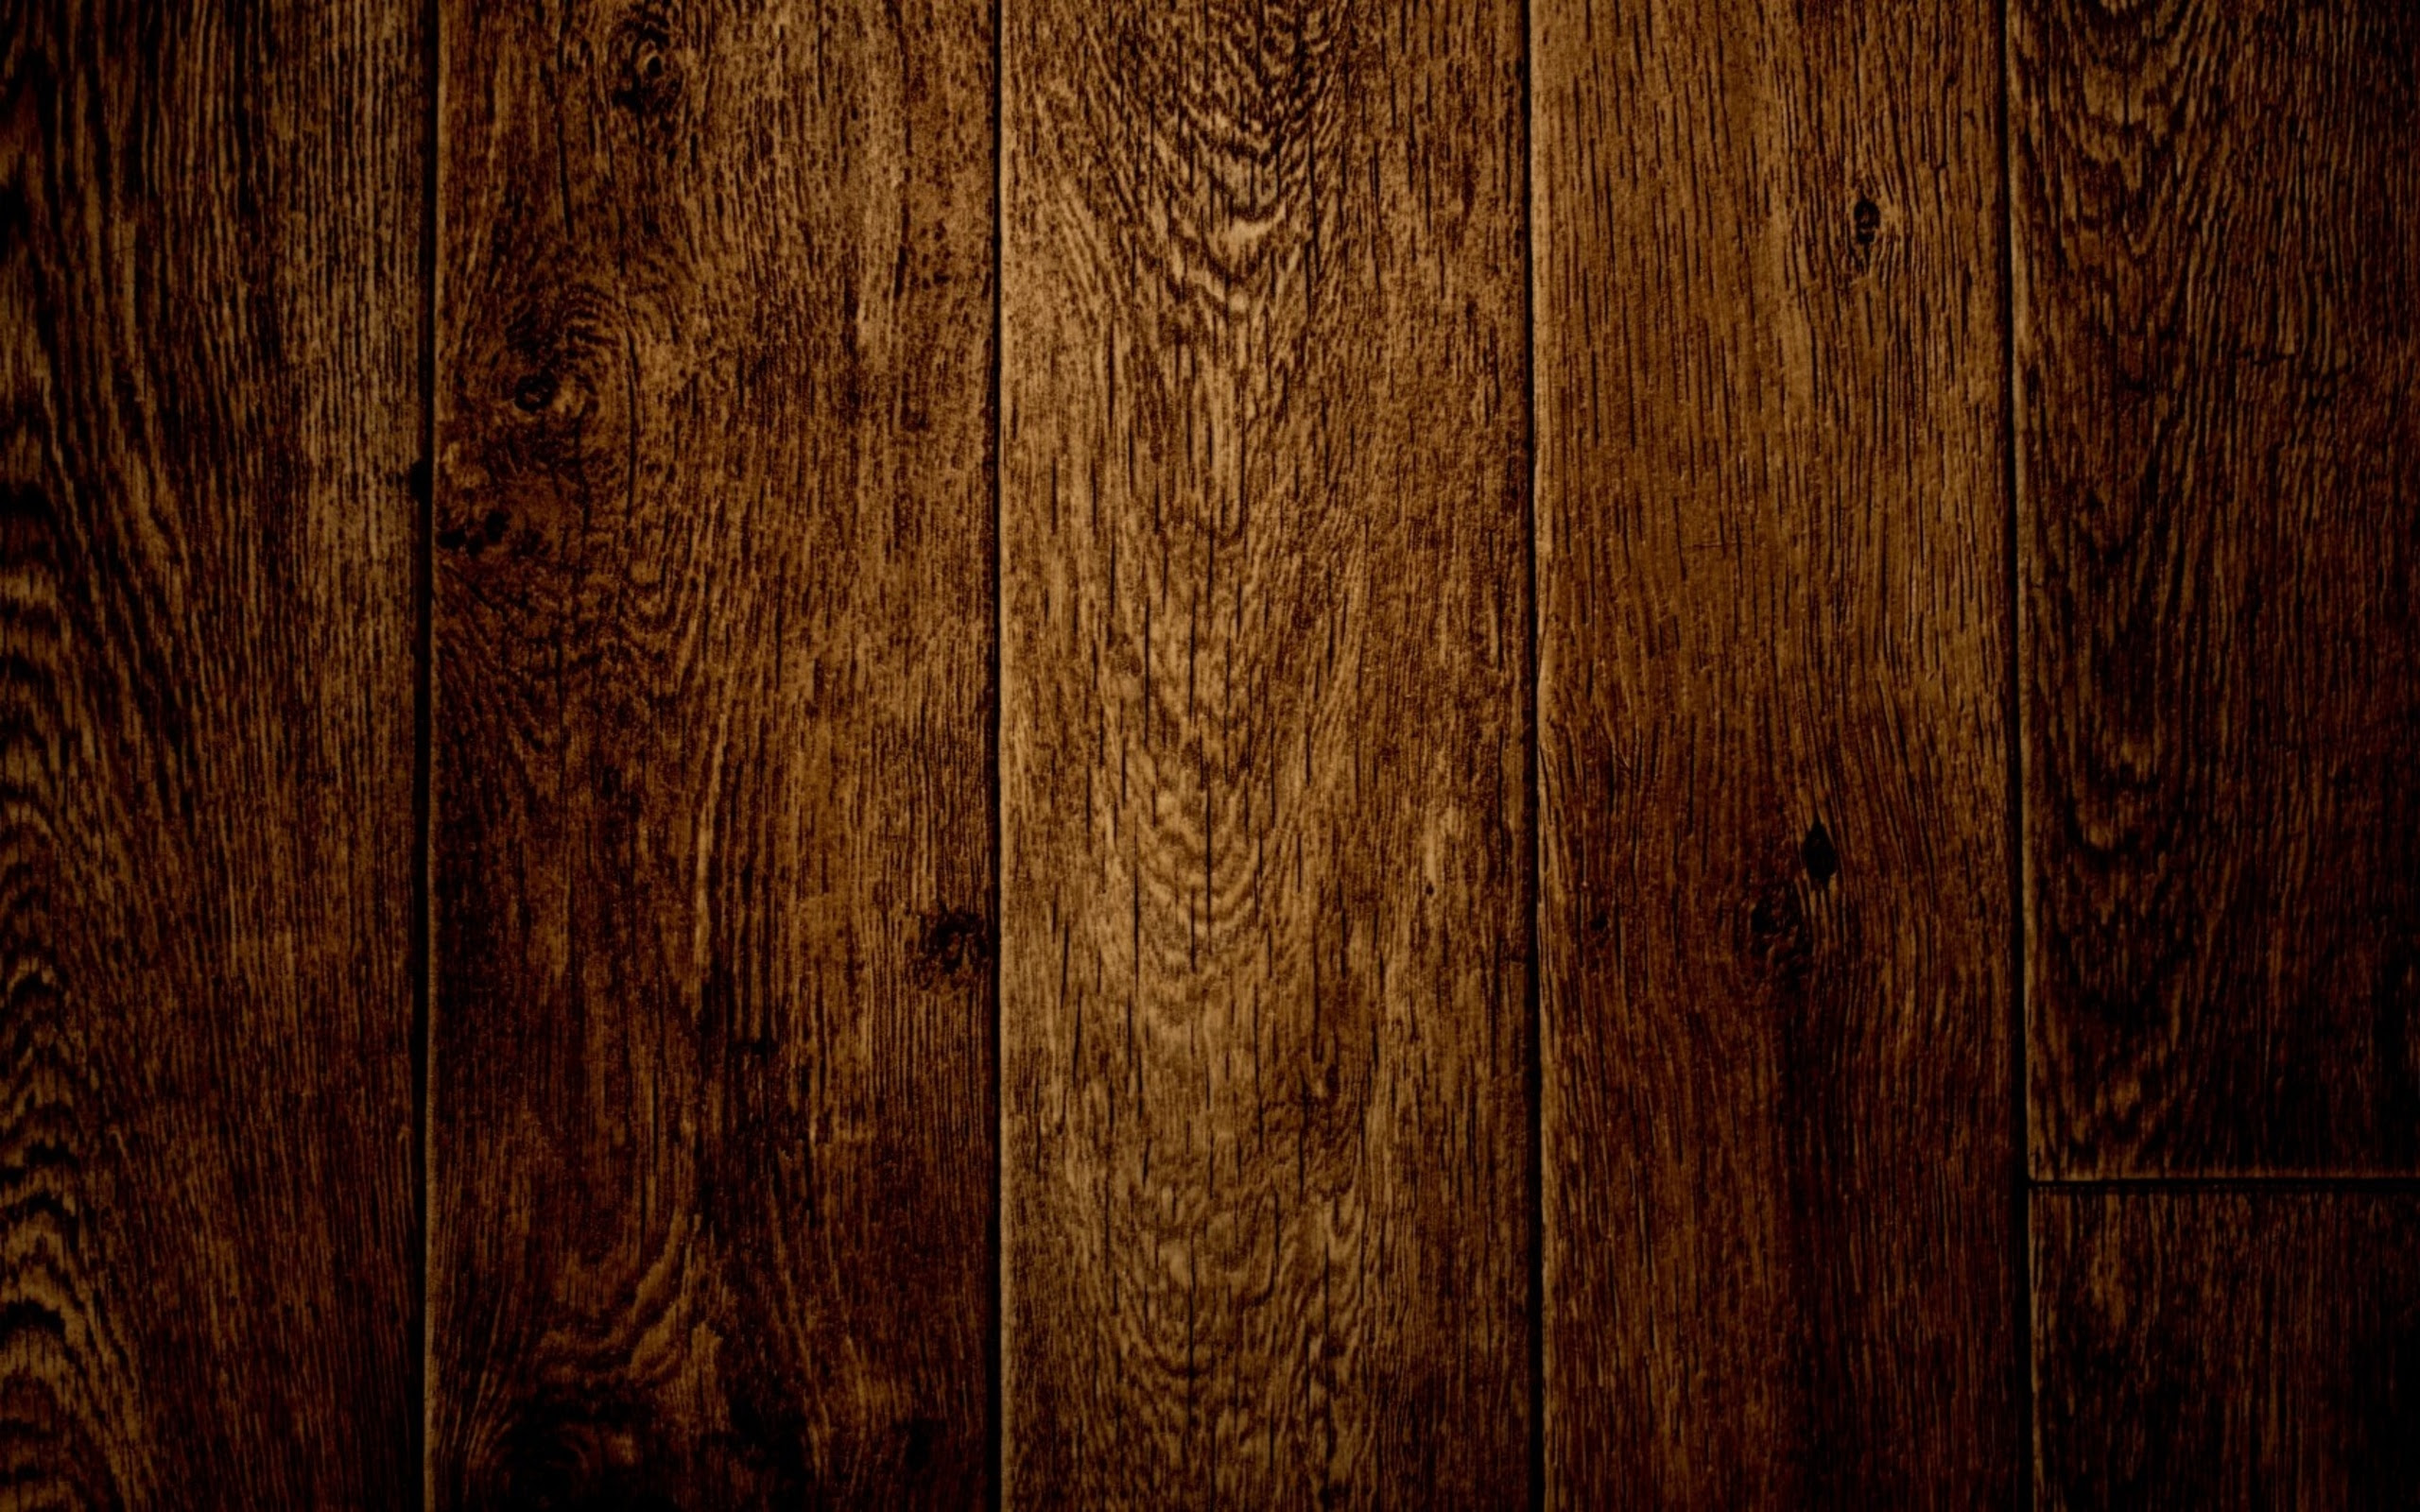 50 Hd Wood Wallpapers For Free Download Images, Photos, Reviews